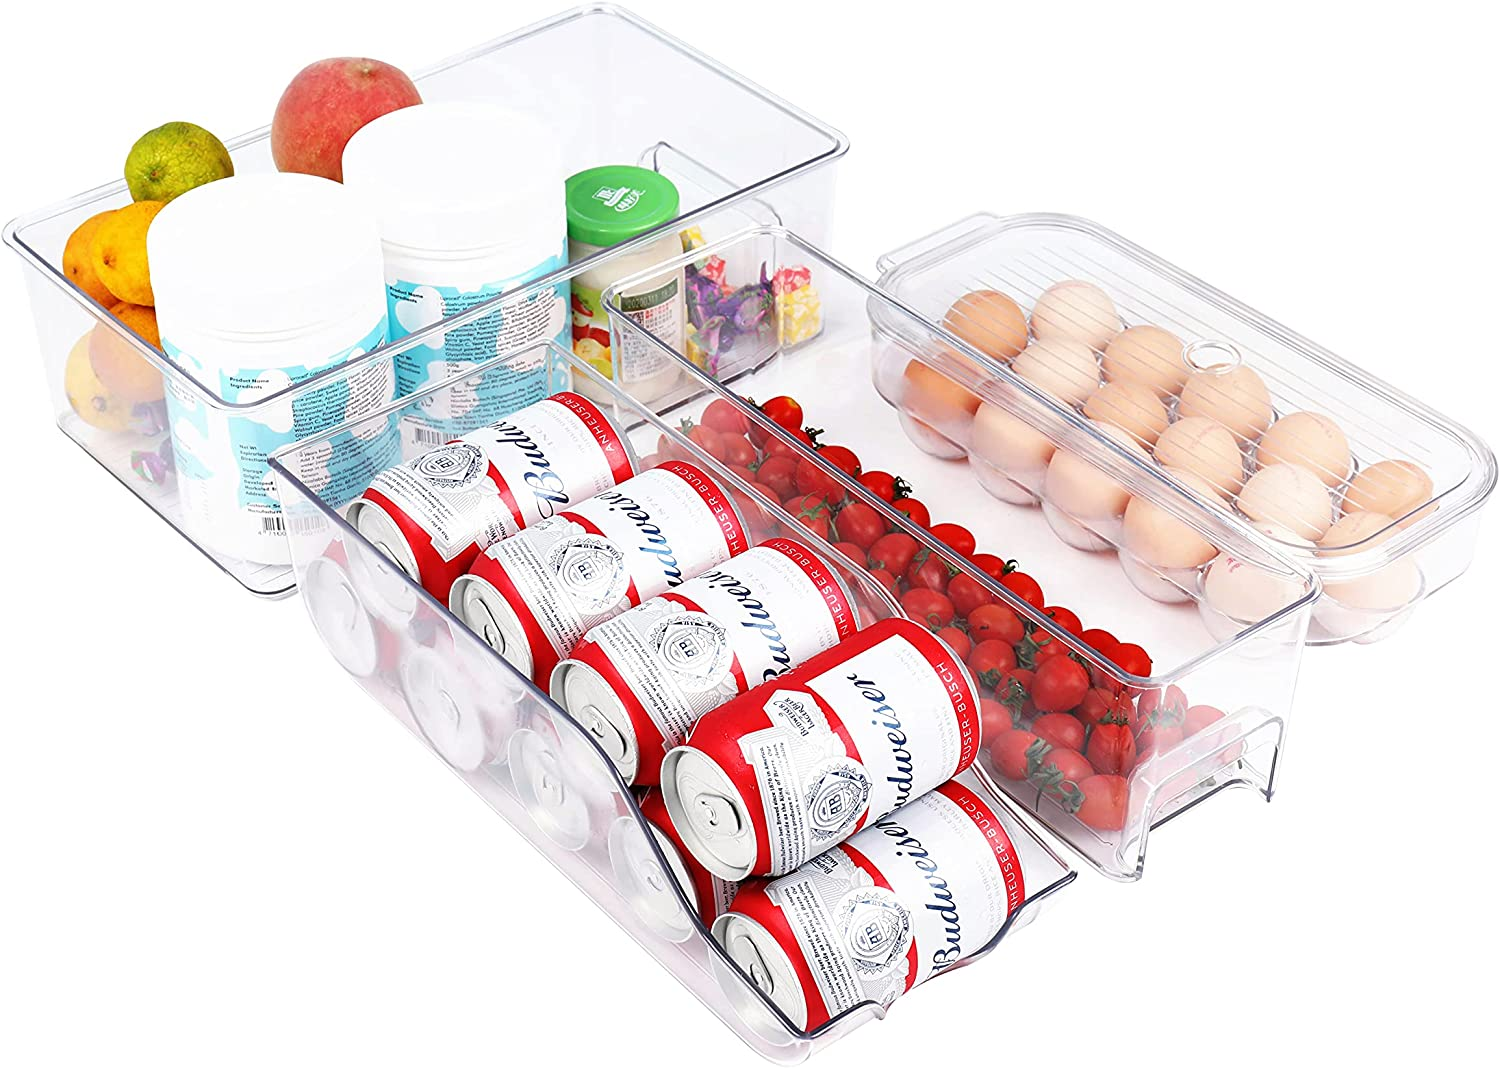 4 Pack PET Material Clear Refrigerator Organizer Bins BPA Free Recyclable and ECO friendly, Fridge bins Egg Holding Tray Soda Can Organizer Food Storage Containers for Pantry Kitchen, Cabinet, Freezer